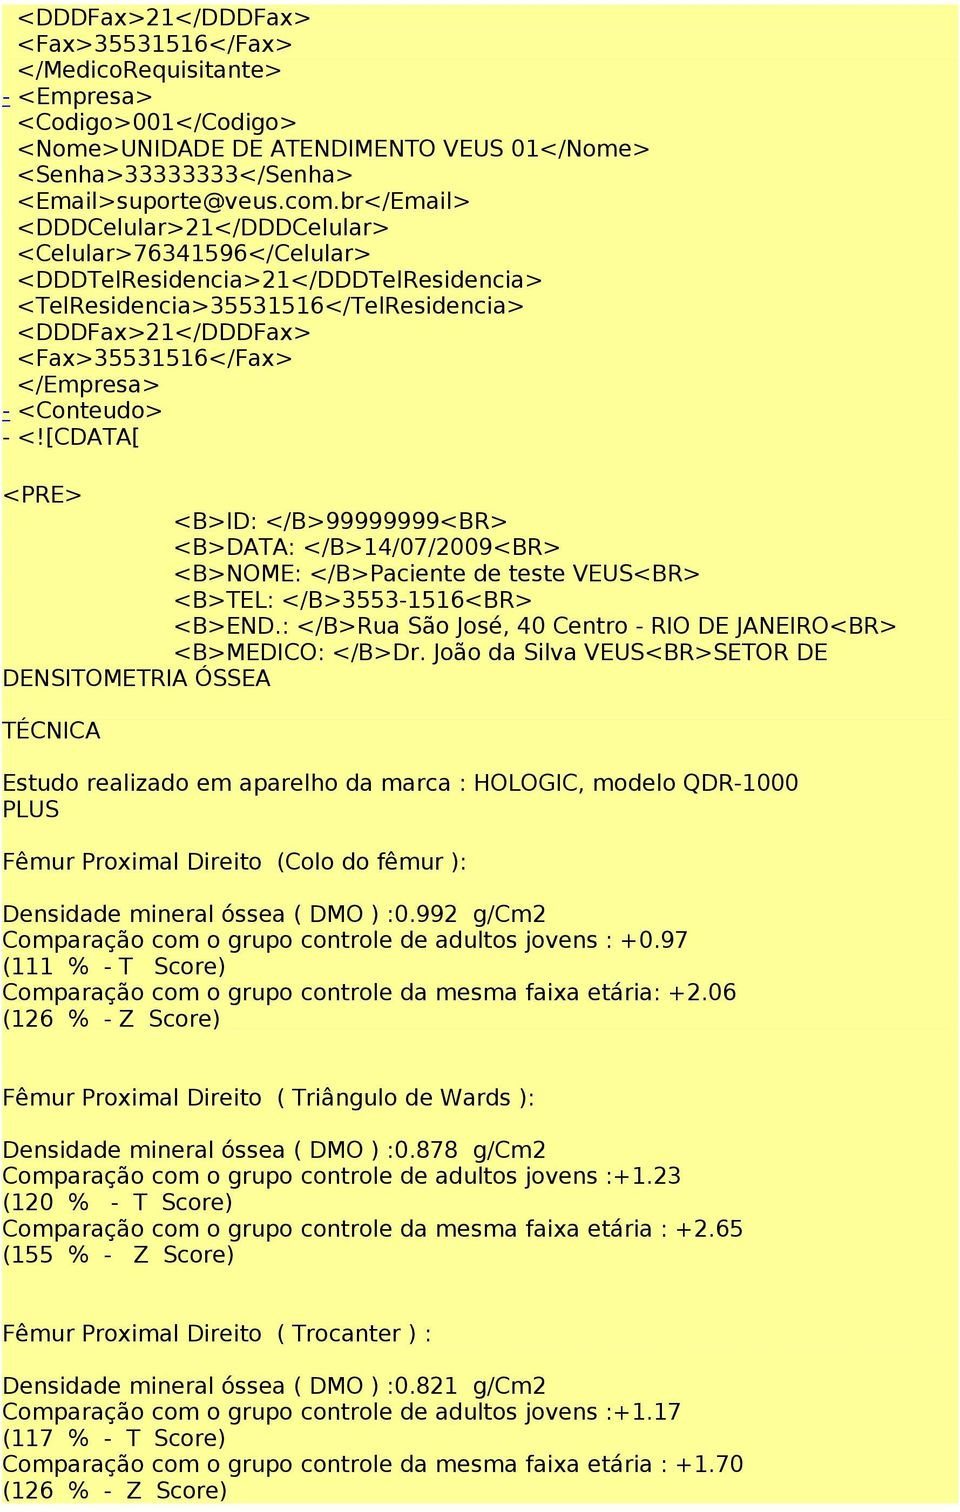 <Conteudo> - <![CDATA[ <PRE> <B>ID: </B>99999999<BR> <B>DATA: </B>14/07/2009<BR> <B>NOME: </B>Paciente de teste VEUS<BR> <B>TEL: </B>3553-1516<BR> <B>END.